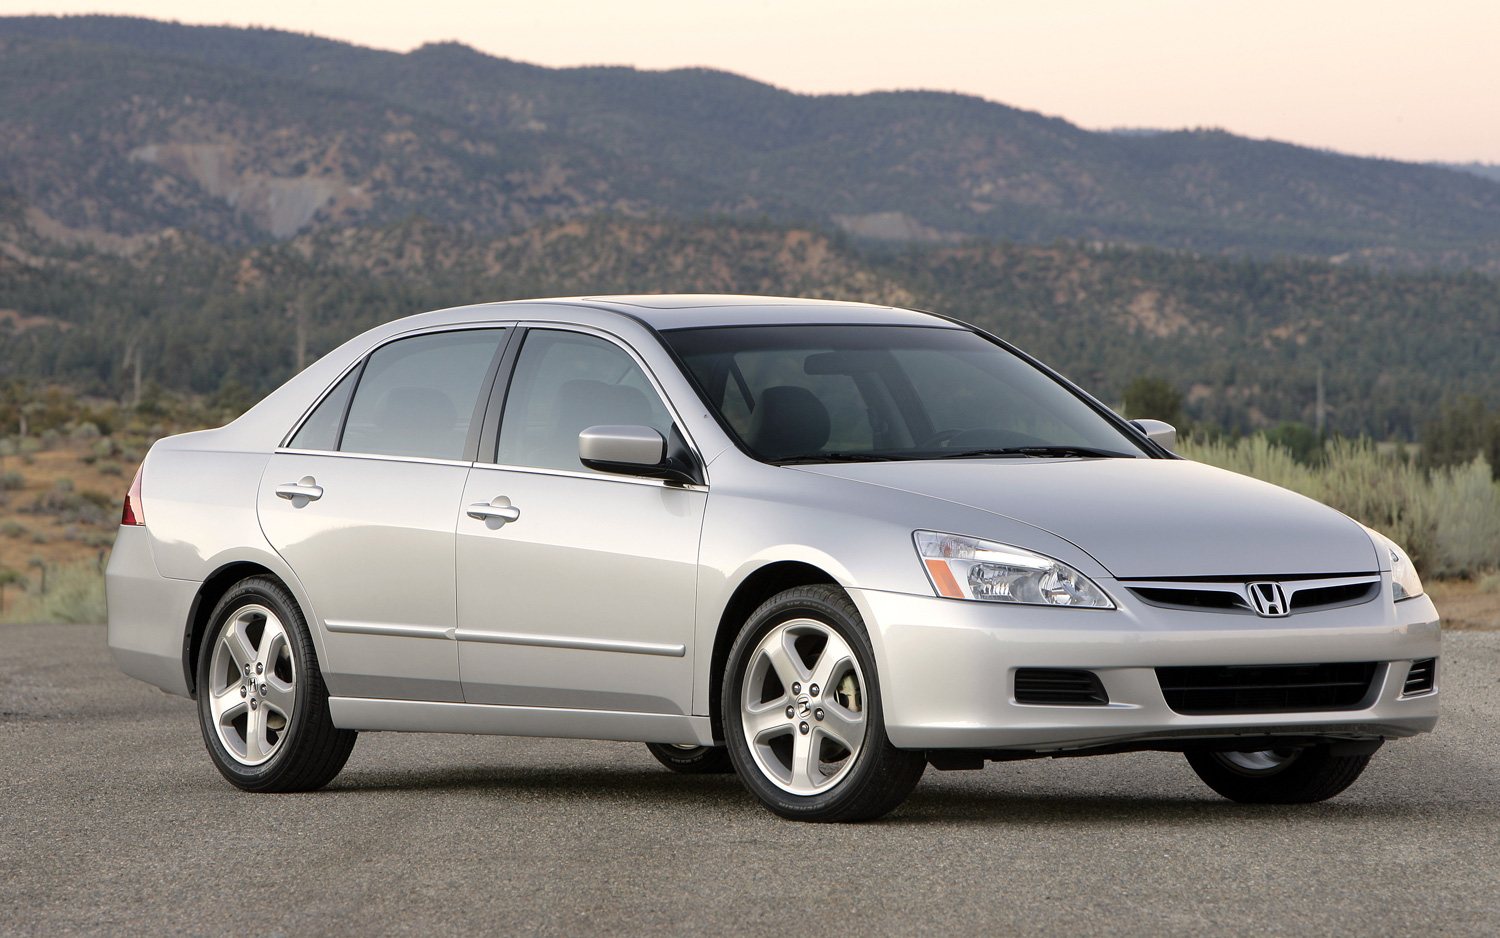 Honda Recalls 573,147 2003 2007 Accords And 52,615 2007 2008 Acura TLs For  Power Steering Issue